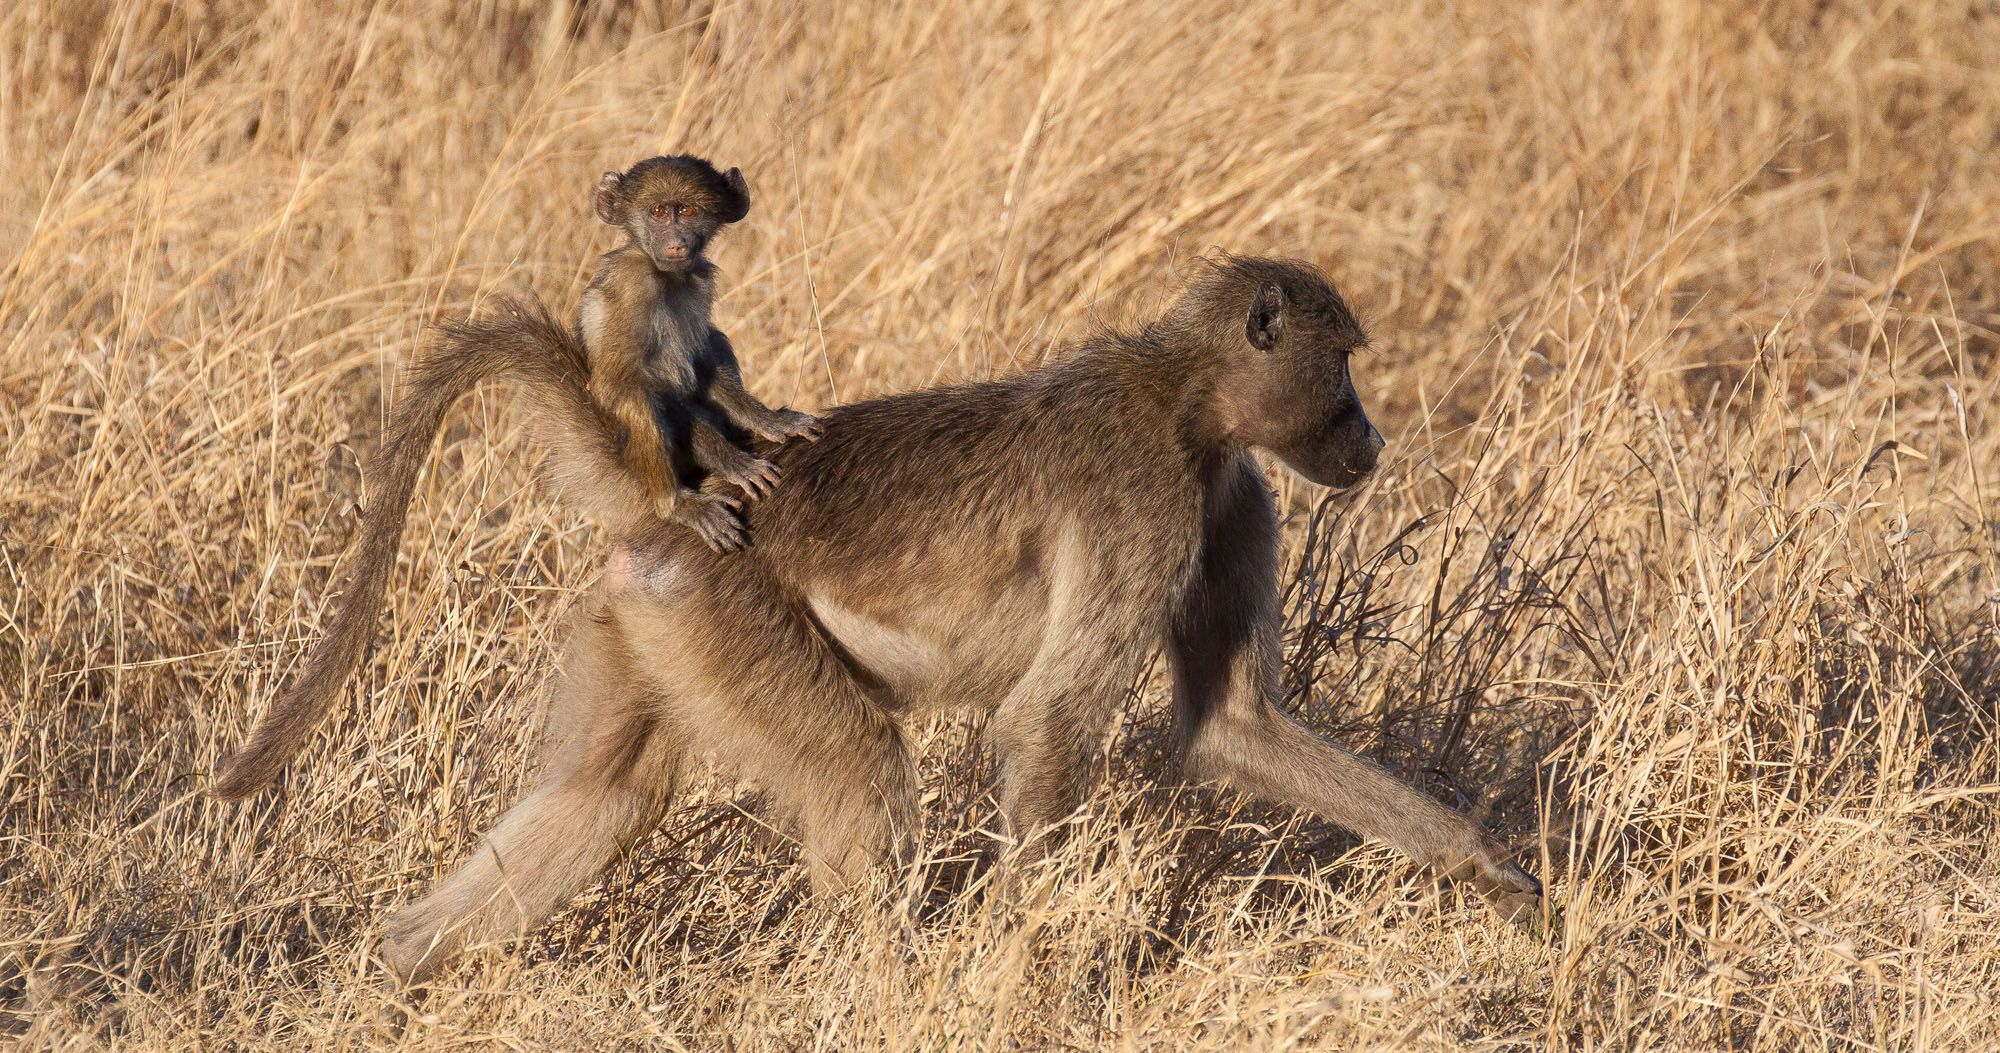 Baboons in Kruger